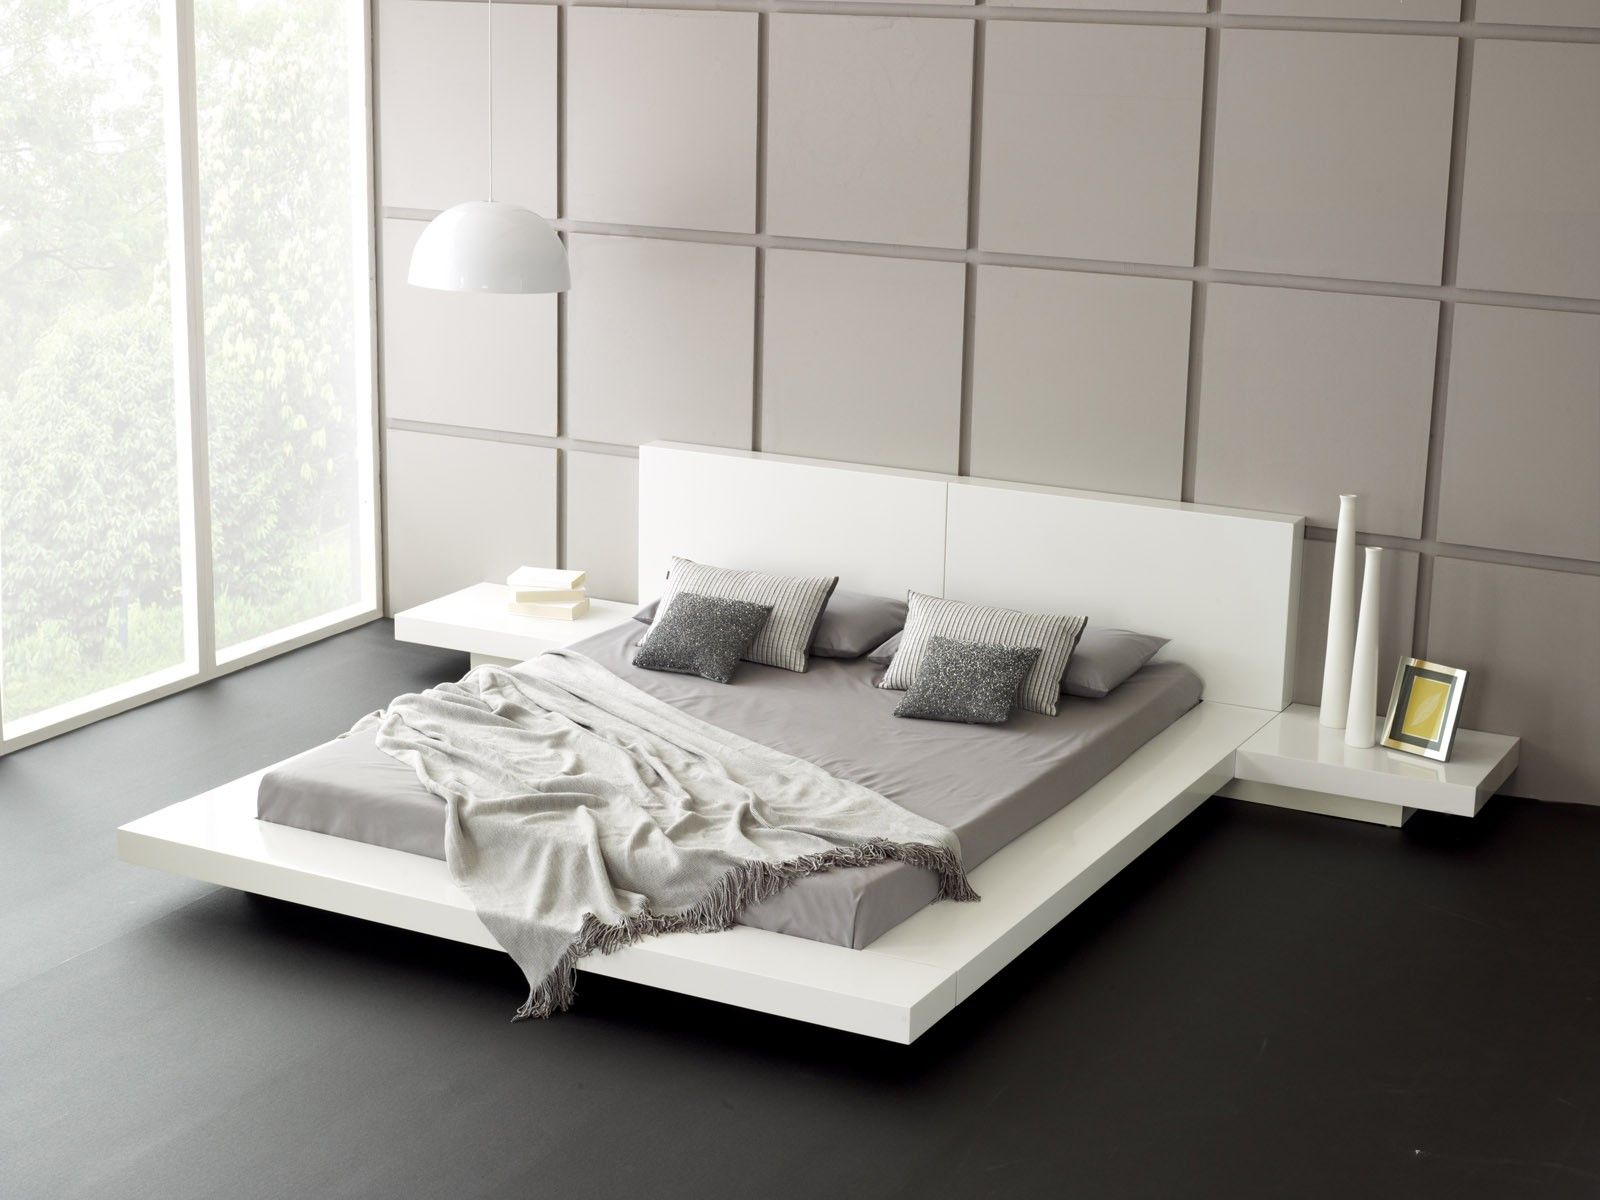 Luxurious Modern Master Bedroom With White Wooden Bed Frames Low